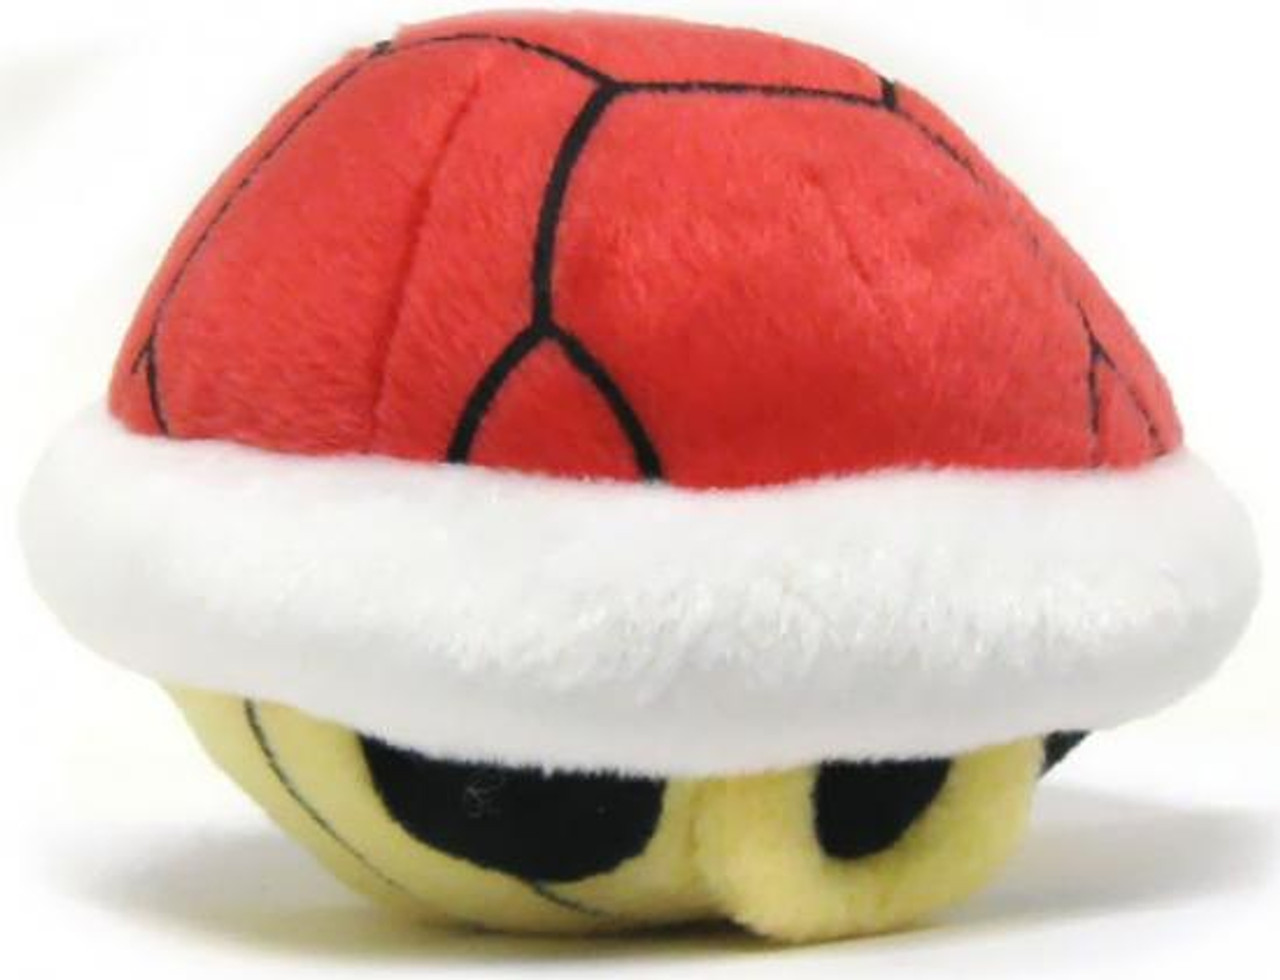 Super Mario Mario Kart Wii Volume 2 Red Turtle Shell Plush